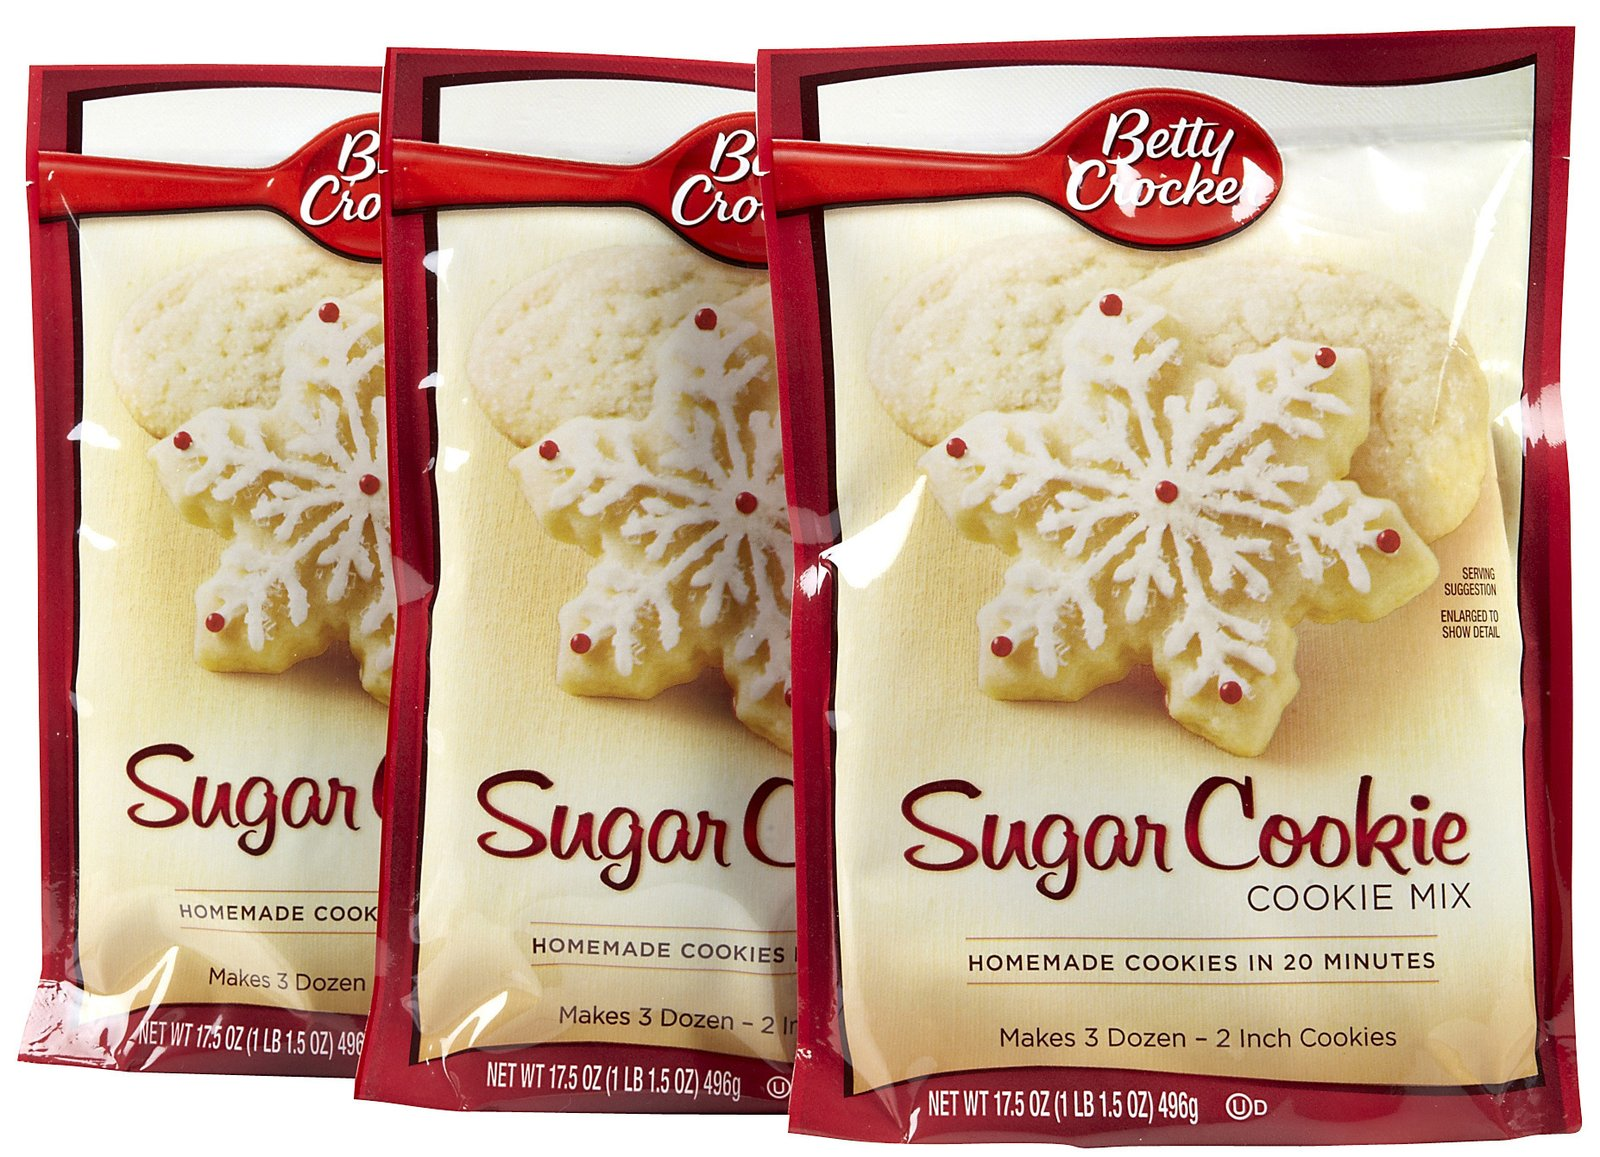 Betty crocker recipes from sugar cookie mix - Food cookie recipes